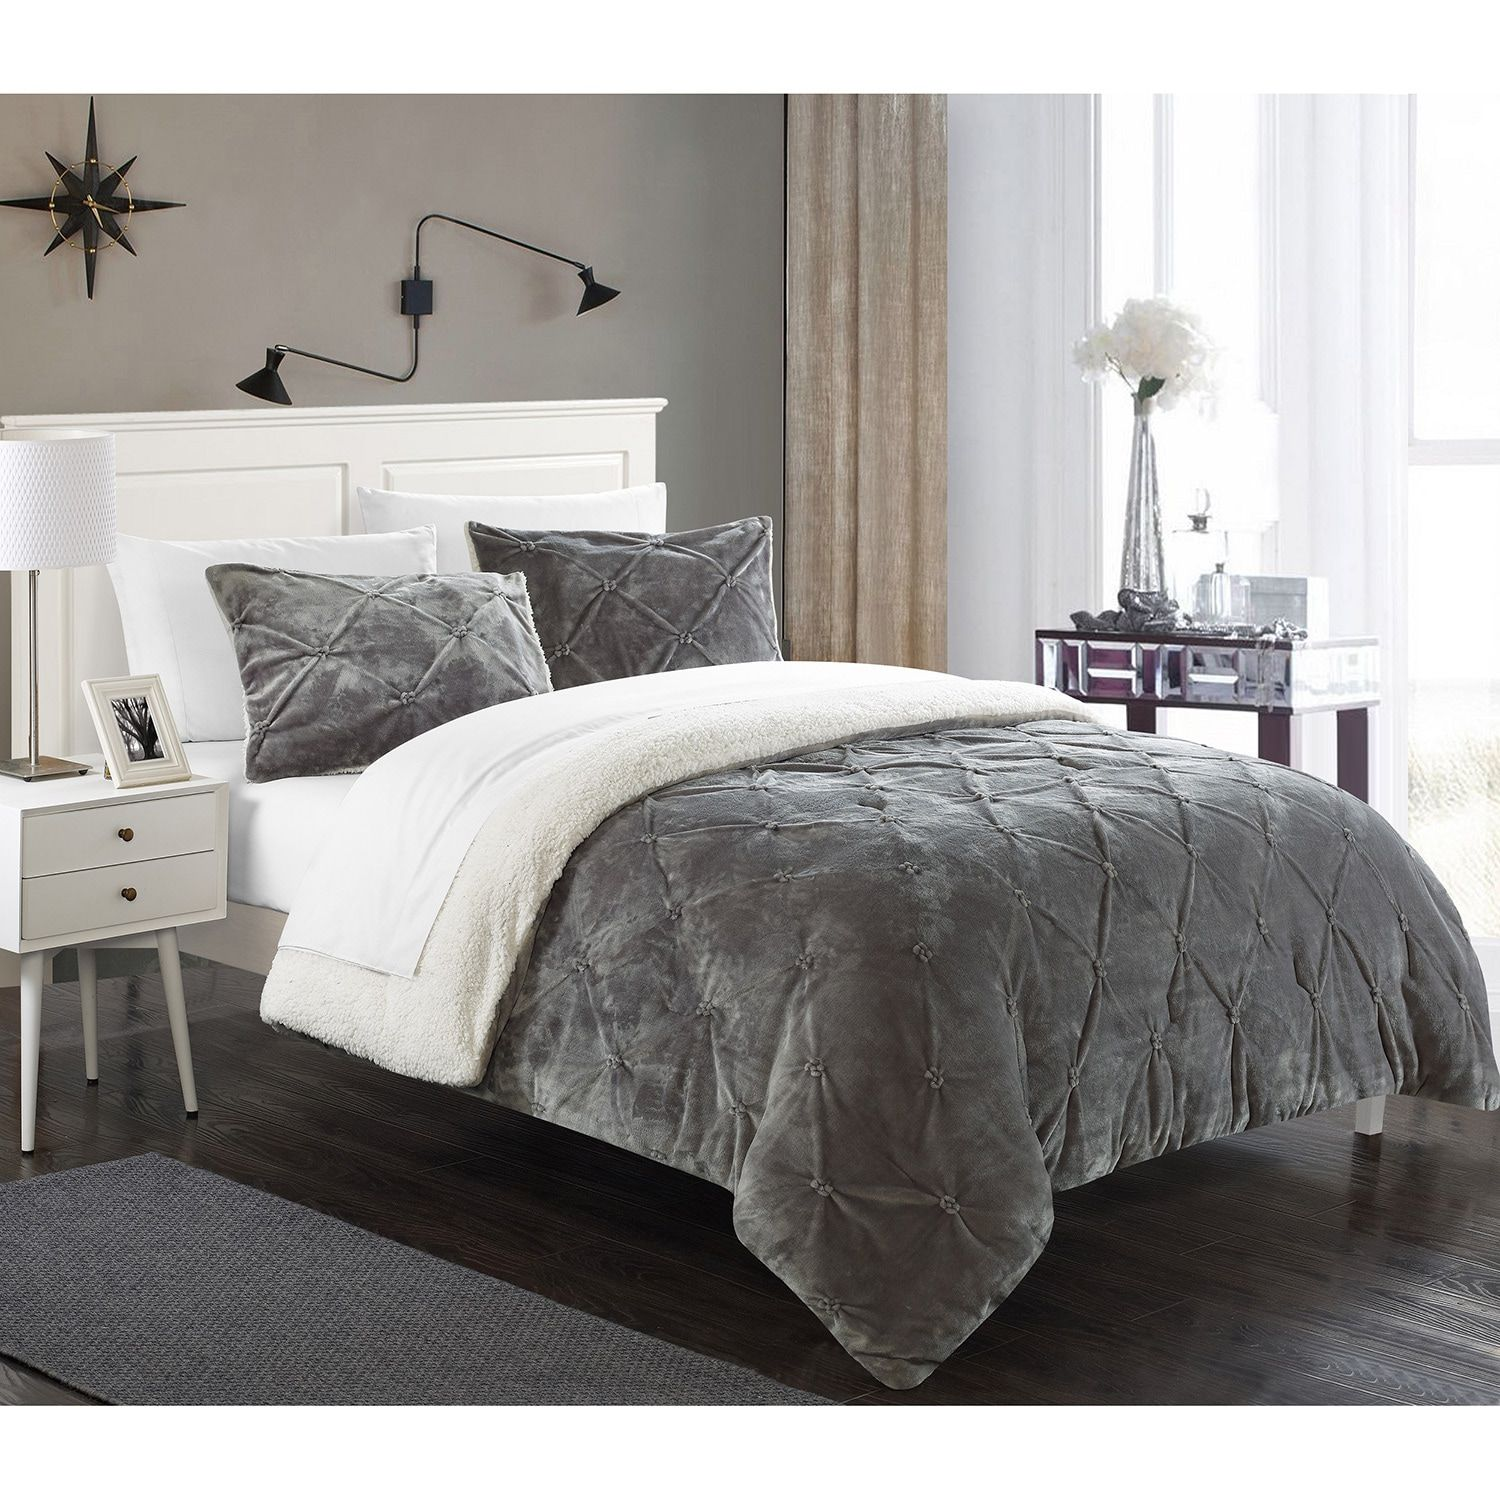 $122 Chiara Sherpa Lined Grey Microplush 7 piece Bed In a Bag